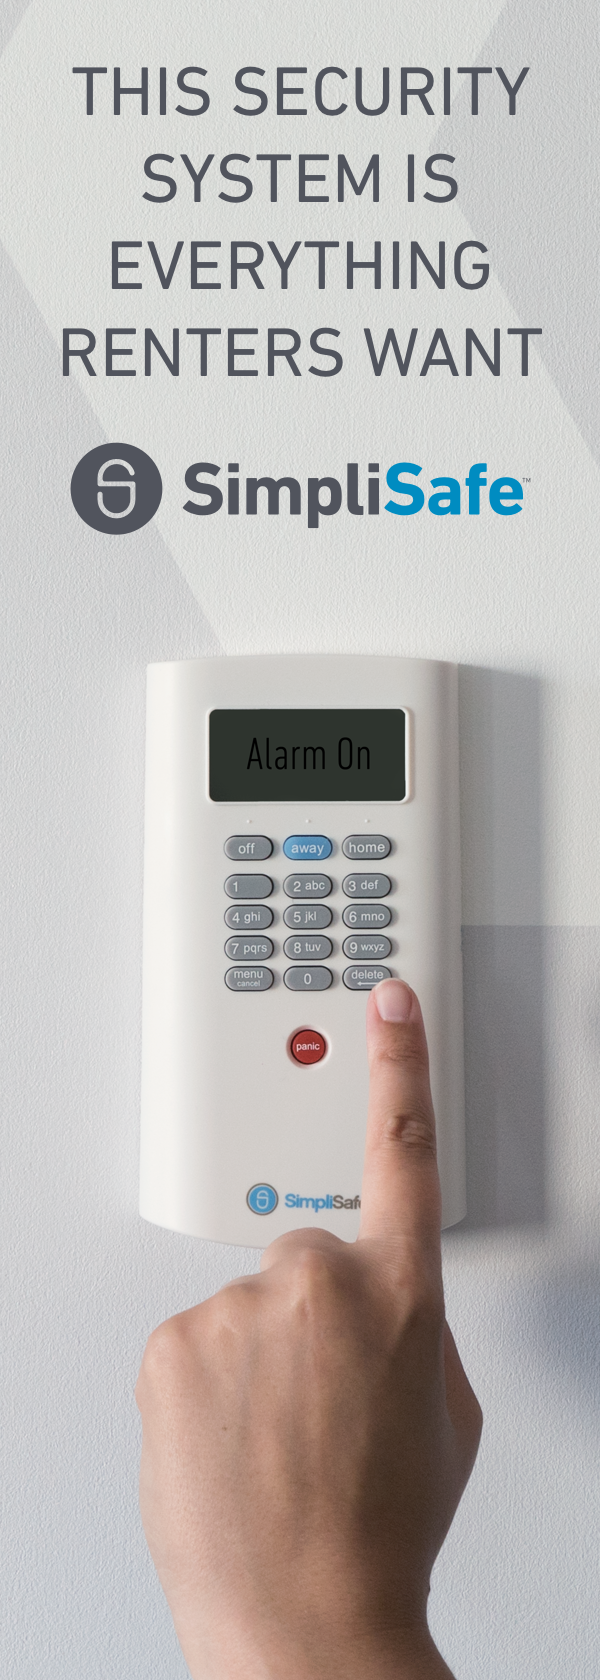 SimpliSafe: Home Security Systems